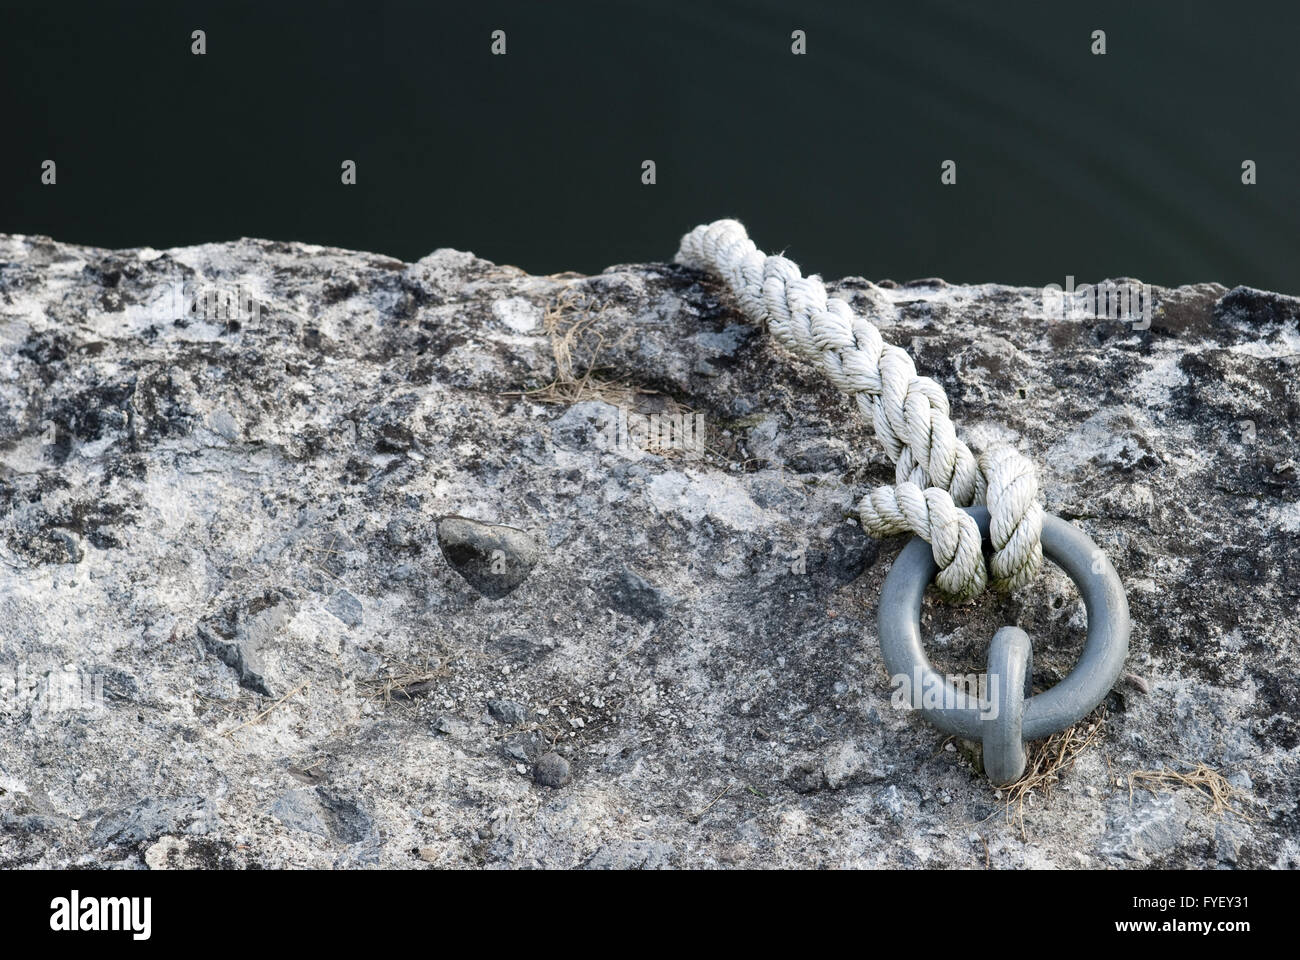 Rope secured to metal ring - Stock Image